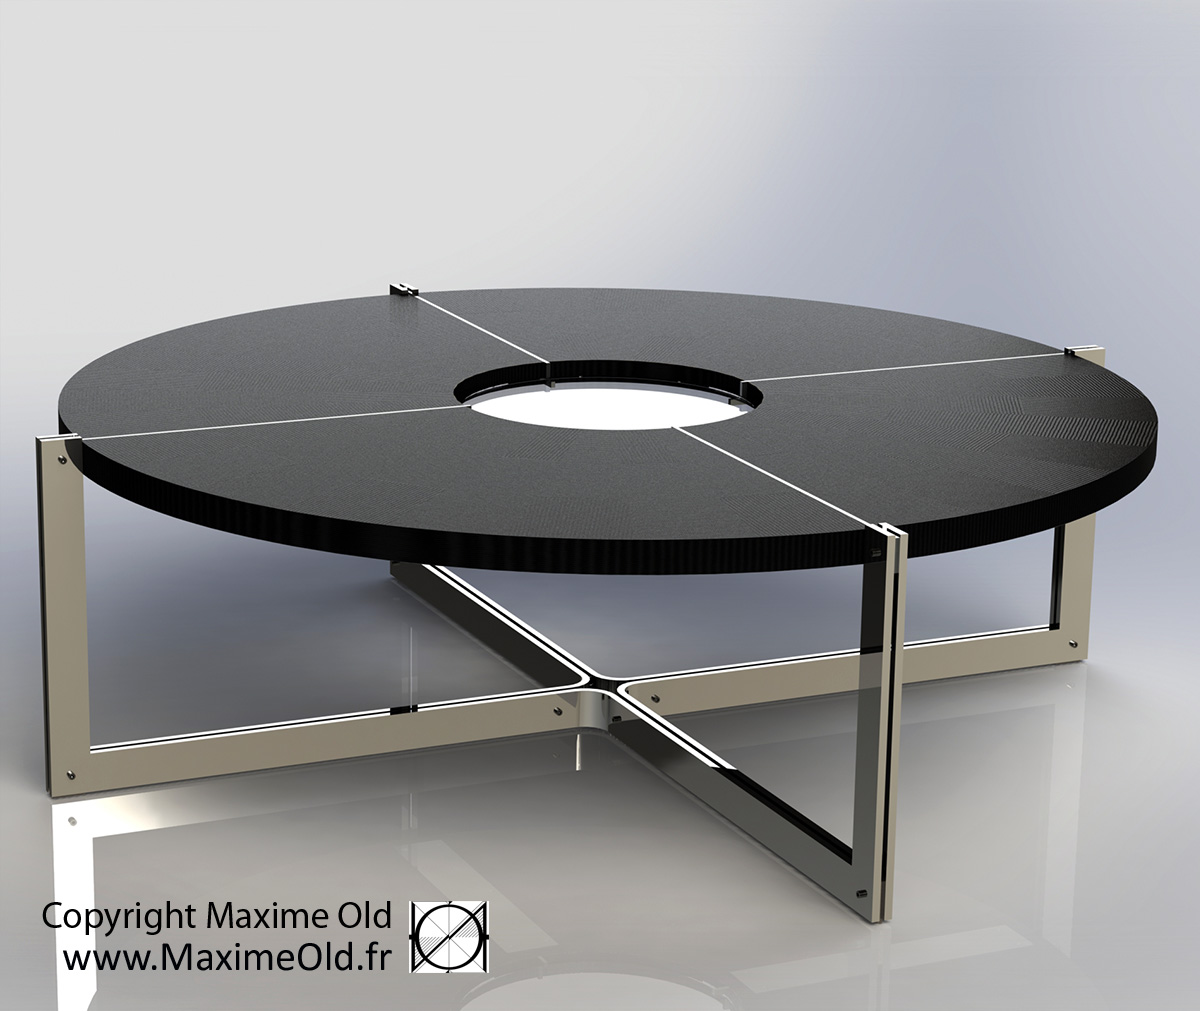 Coffee-Side Tables: Maxime Old Compass Card Table